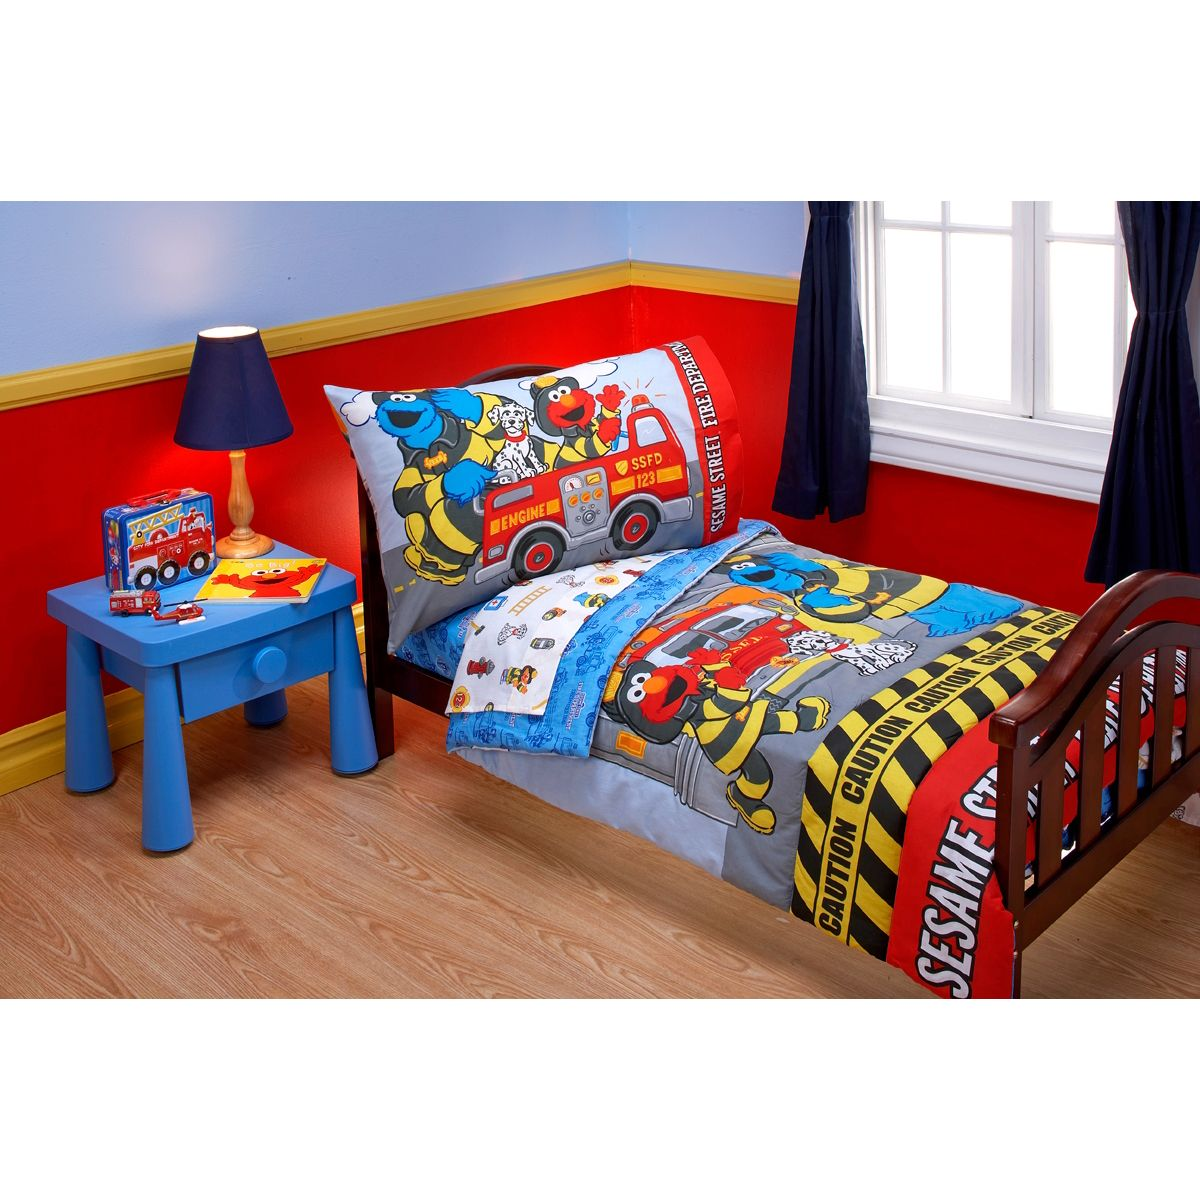 Sesame Street Fire Department 4Piece Toddler Bedding Set  Pbs Fascinating Toddler Bedroom Set Inspiration Design